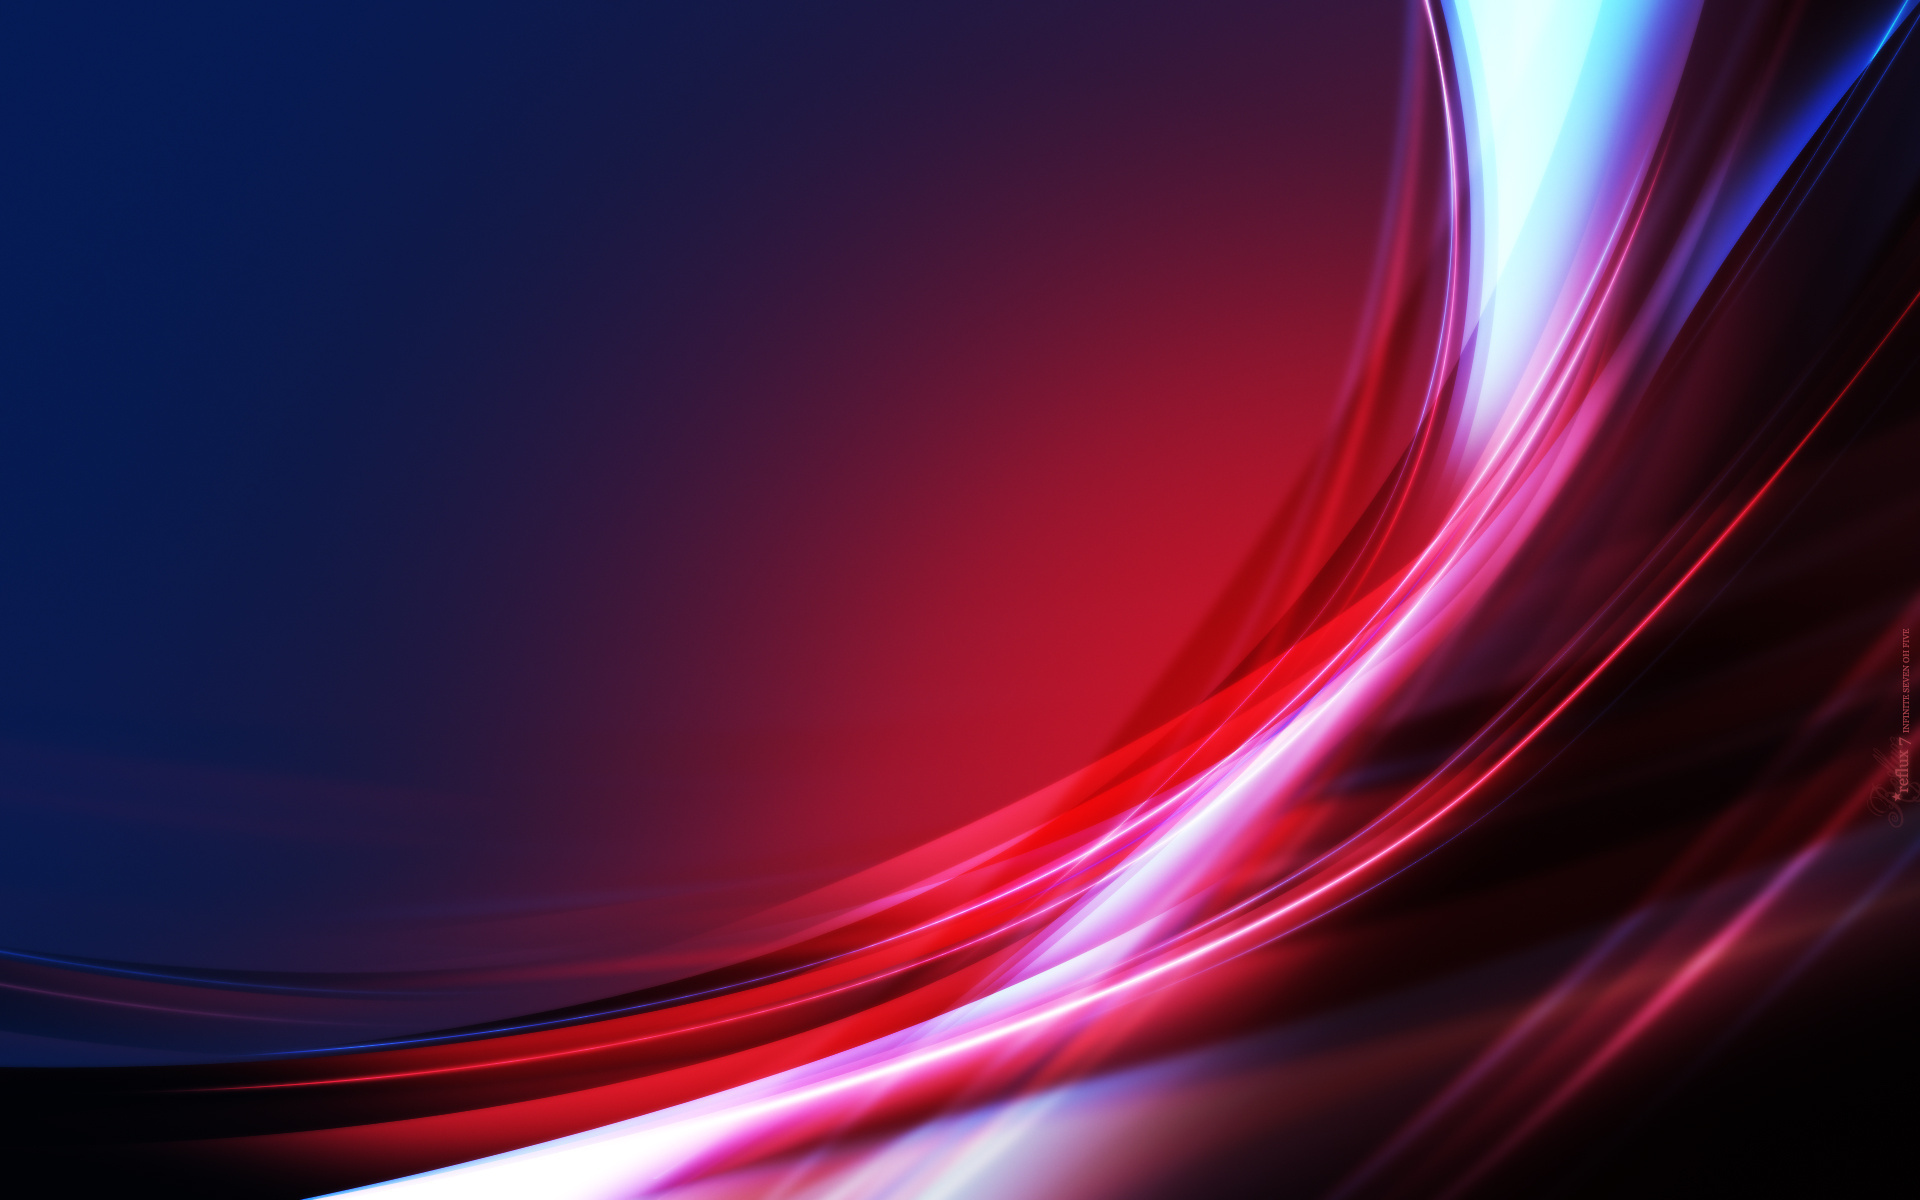 Abstract Red Hd Background Wallpaper HD 1920x1200